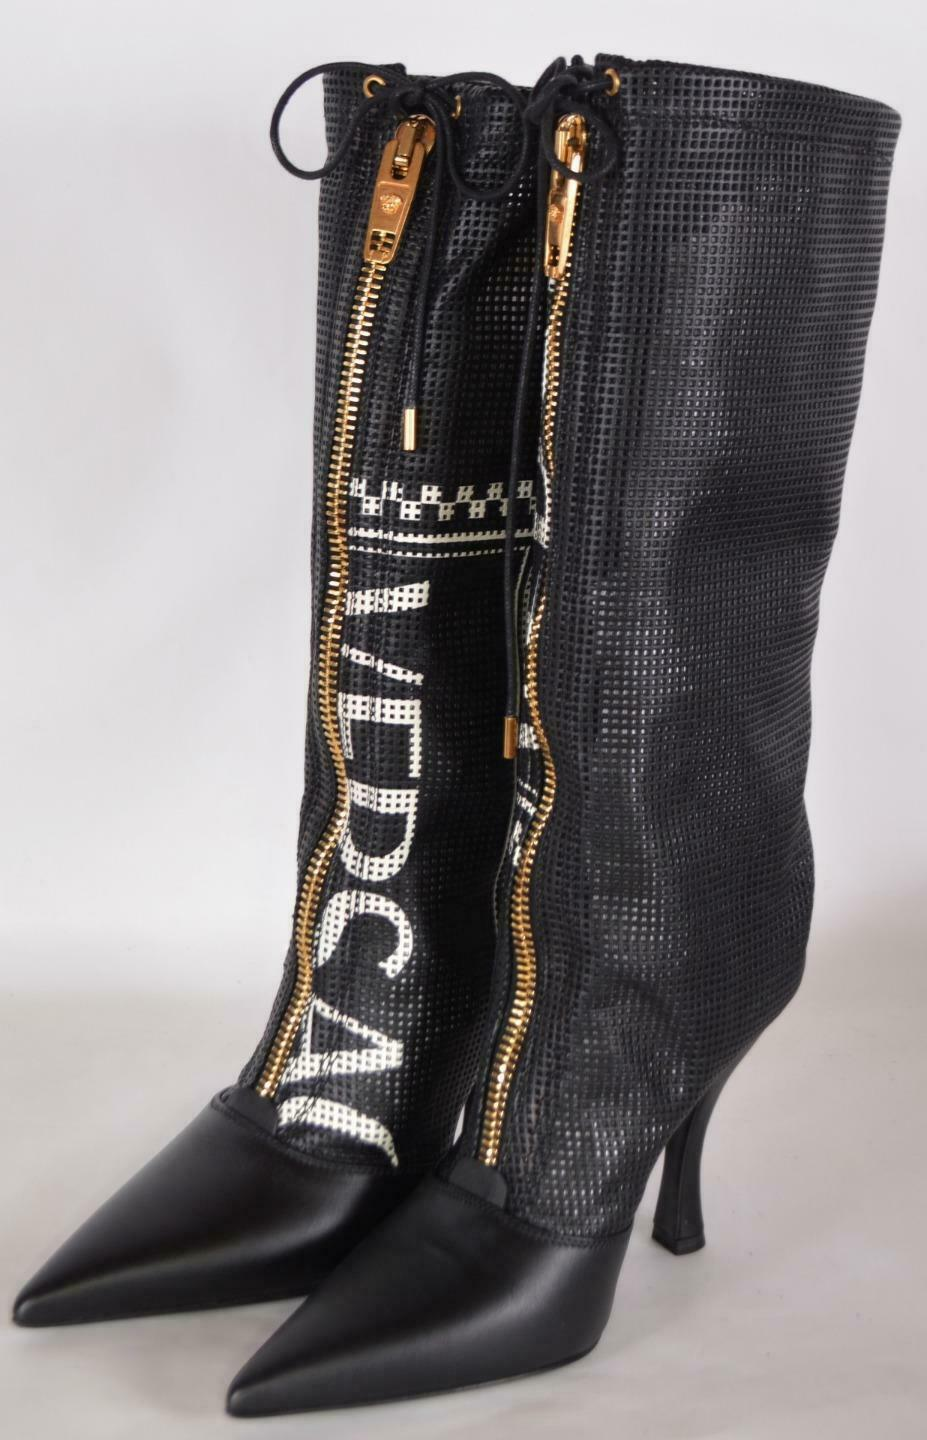 NEW Versace ,095 Black Logo 105 Perforated Leather Runway Boots Shoes 36 6